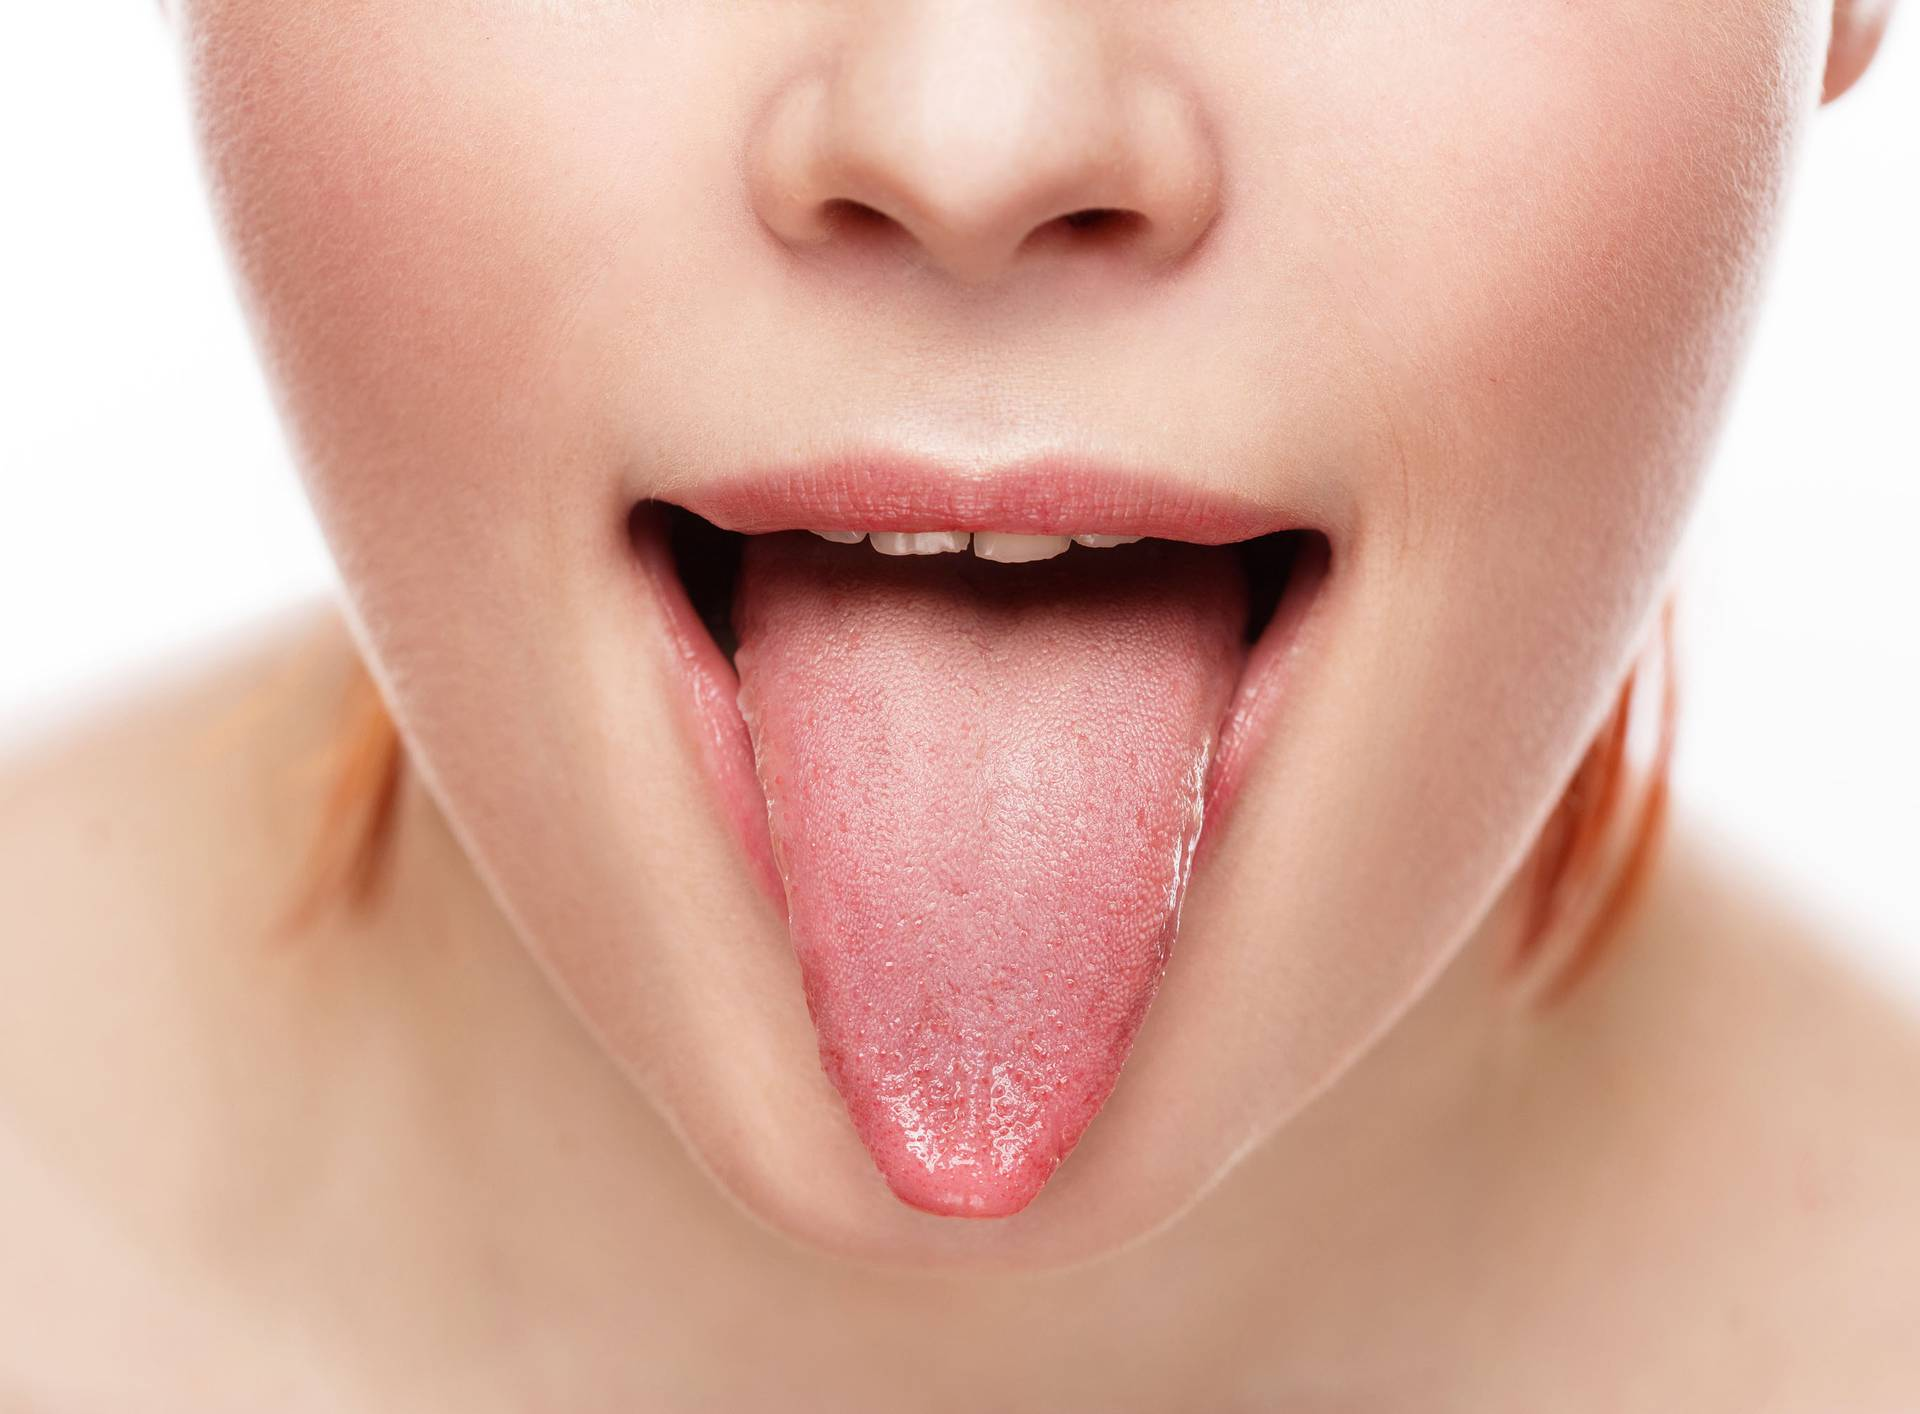 natural tongue open mouth